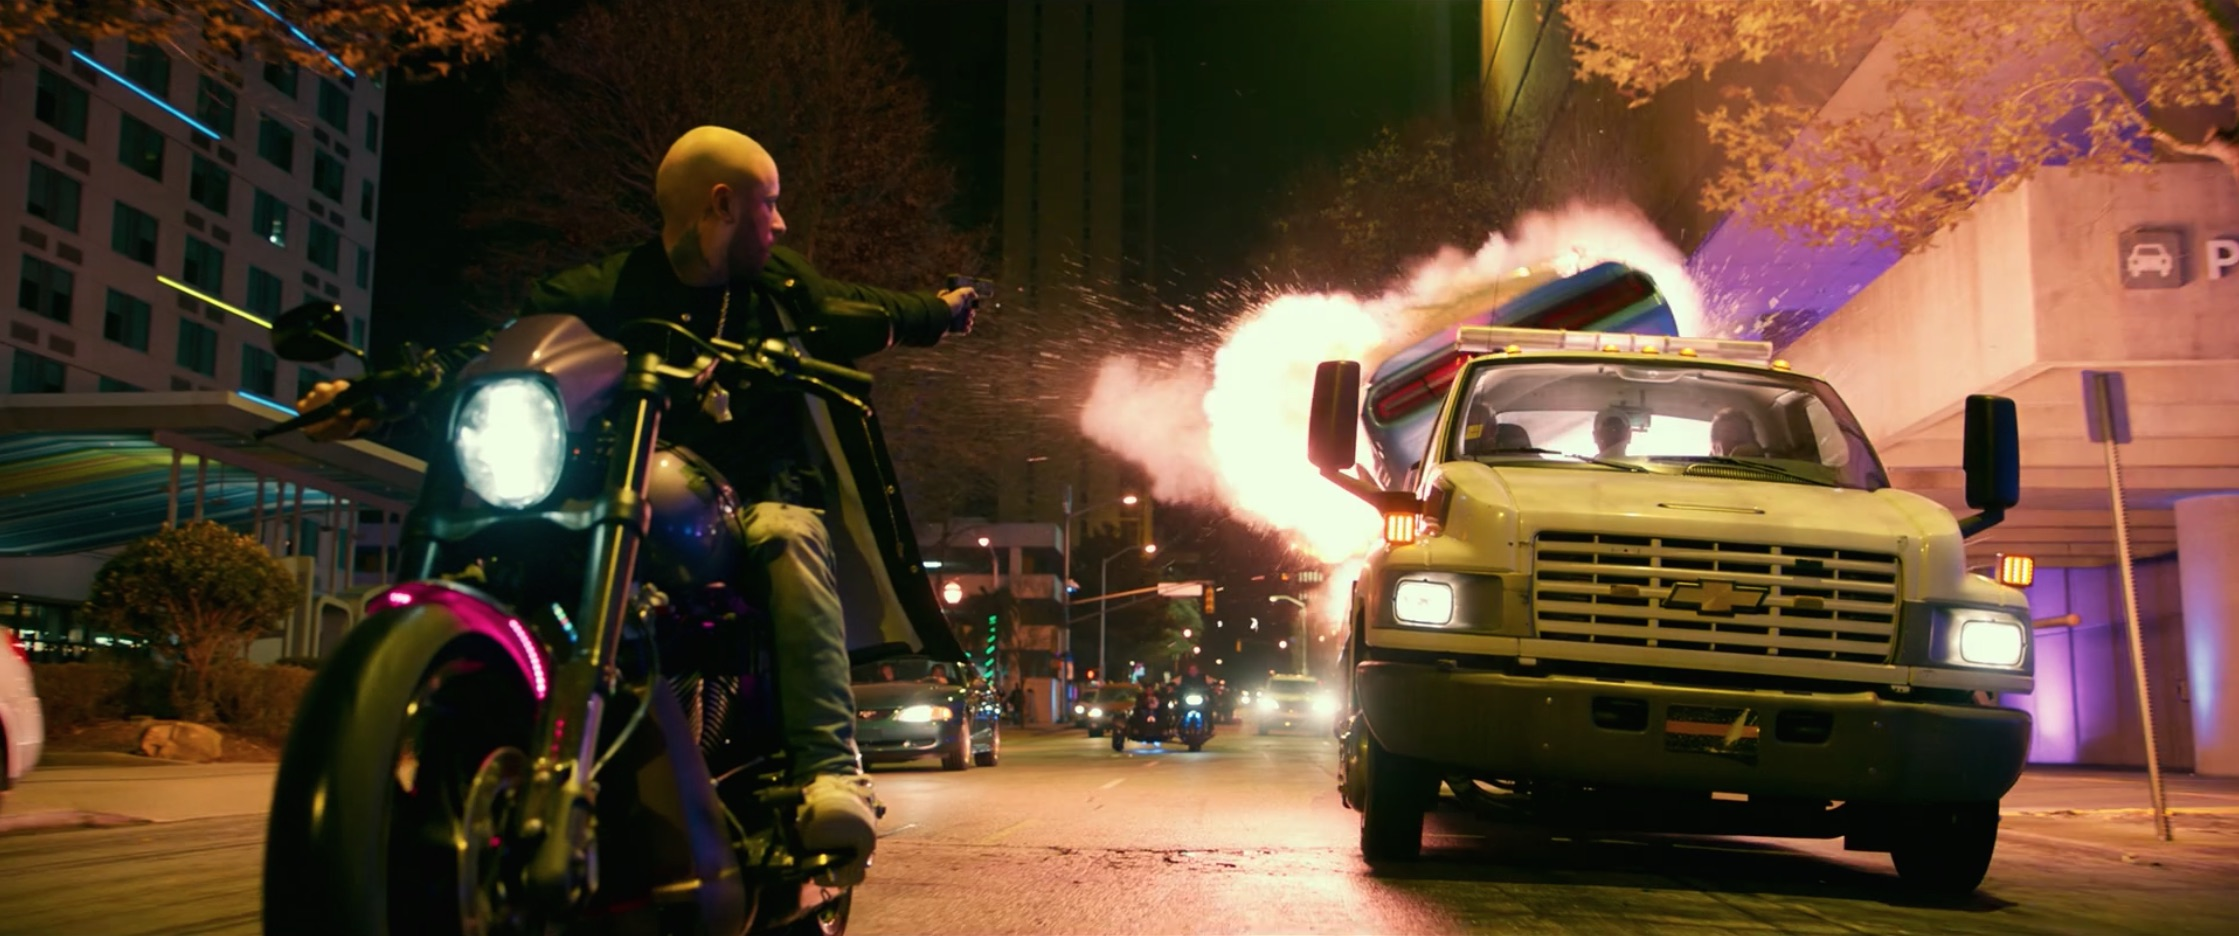 Bad Boys For Life motorcycle rider shooting exploding muscle car